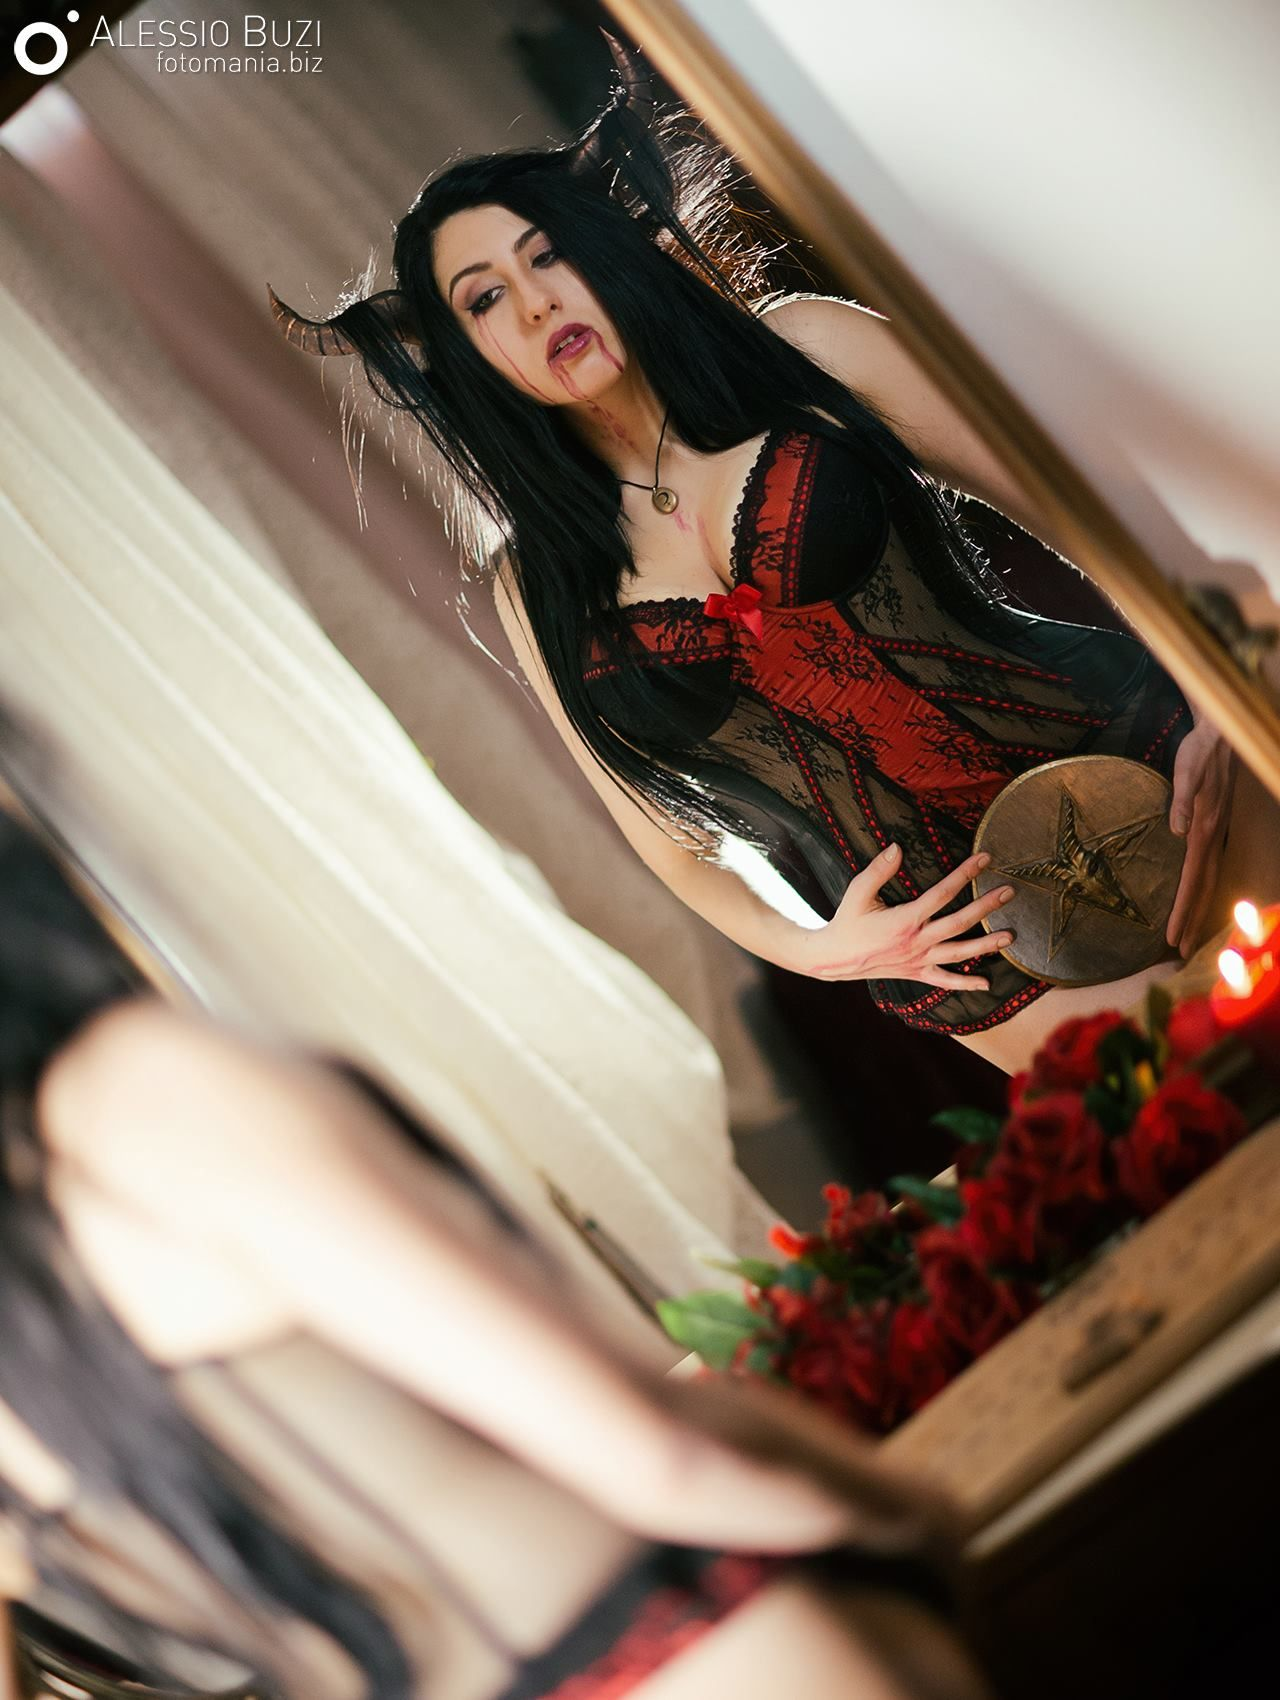 Ph: www.fotomania.biz   Model: https://www.facebook.com/lilithraven.cosplay/?fref=ts  #esoteric #occult #pagan #wicca #magic #magick #gothic #ouija #noctua #baphomet